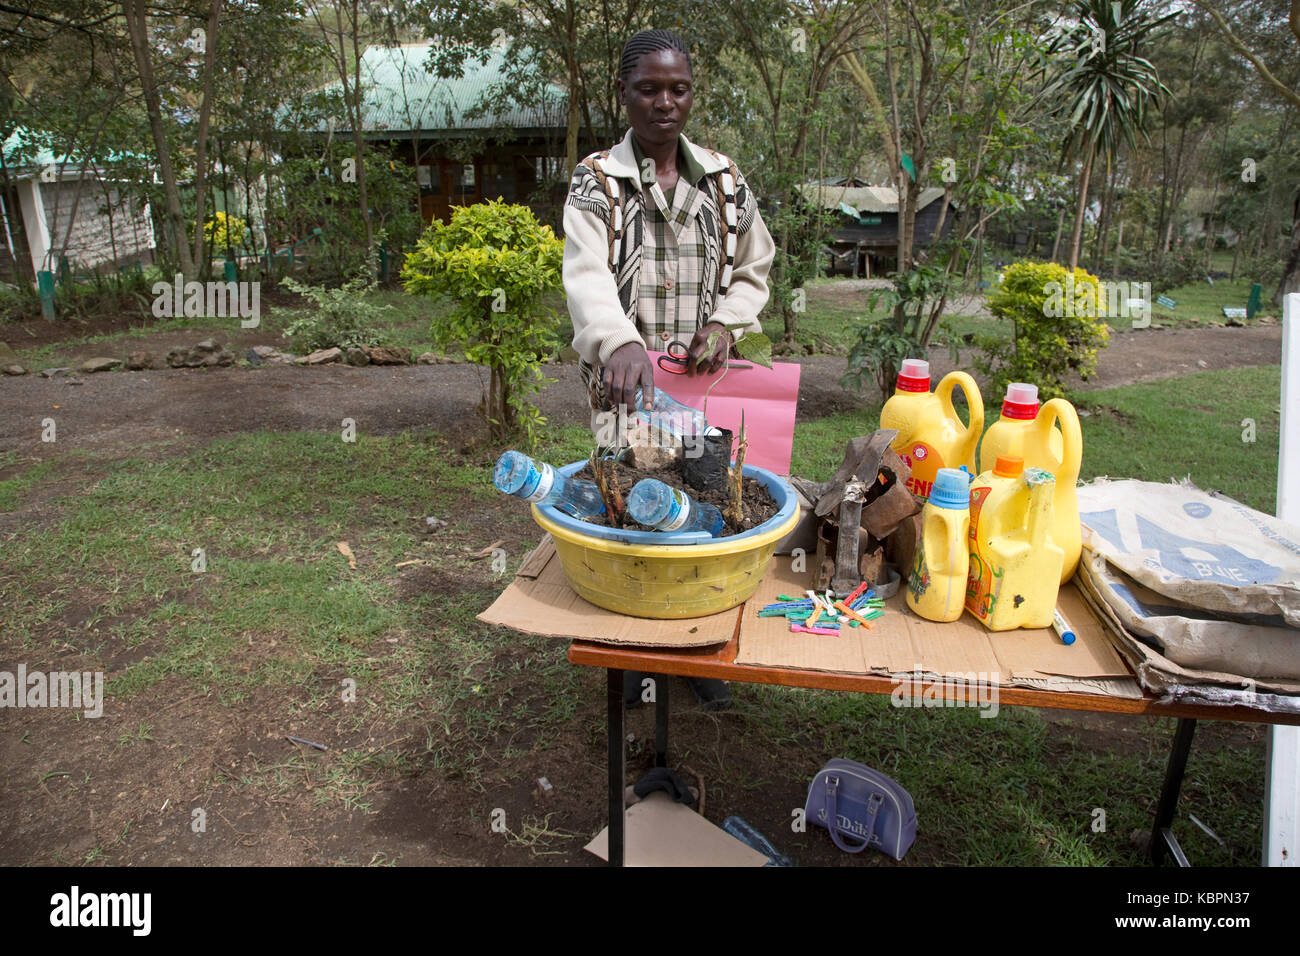 Using plastic water bottles to irrigate young seedings Elsamere Kenya - Stock Image